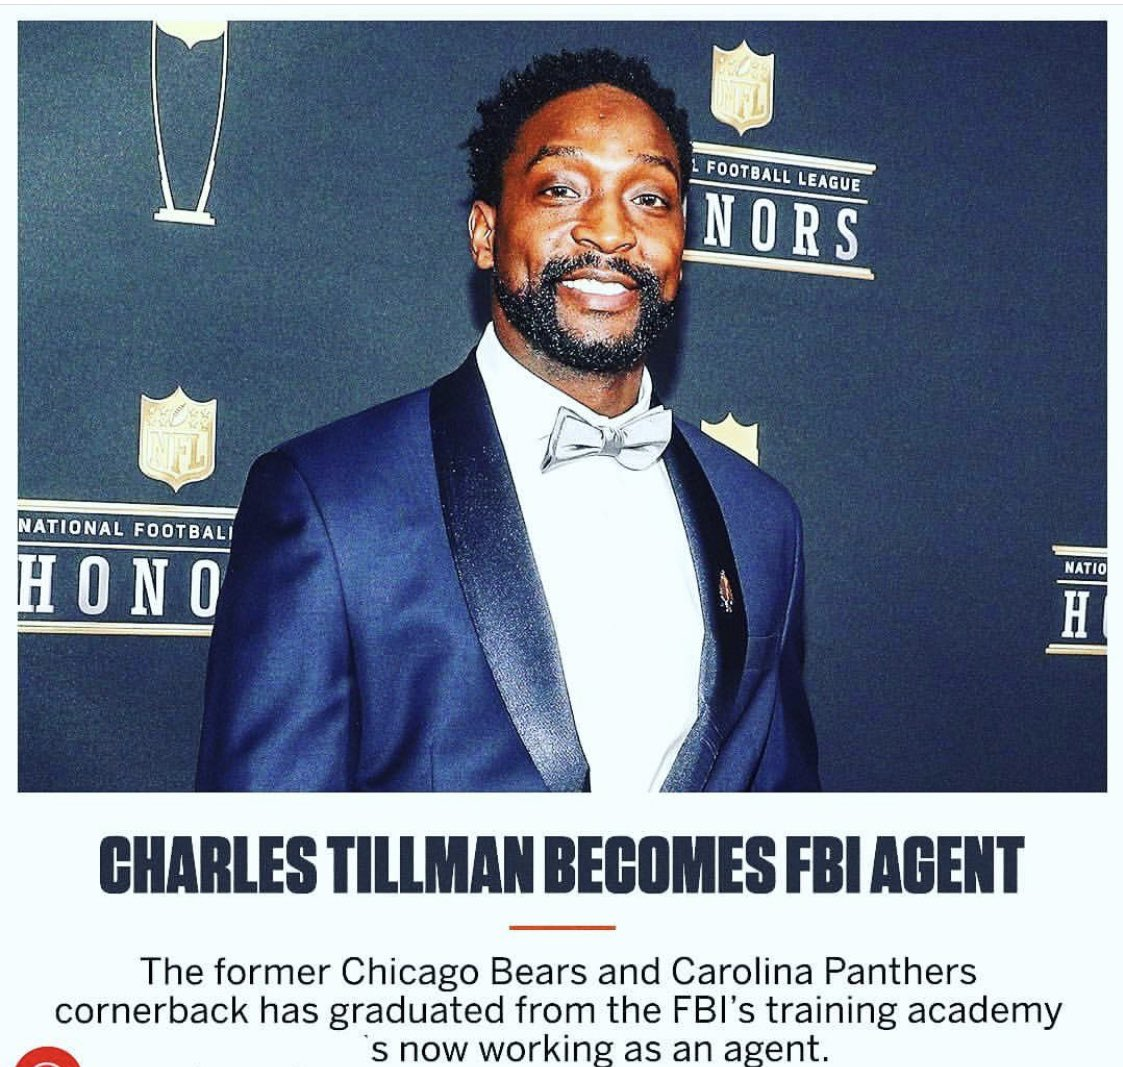 So proud of my former colleague ! What a story! @peanuttillman so proud !!!!!! 🙌🏽🙌🏽🙌🏽🙌🏽🙌🏽